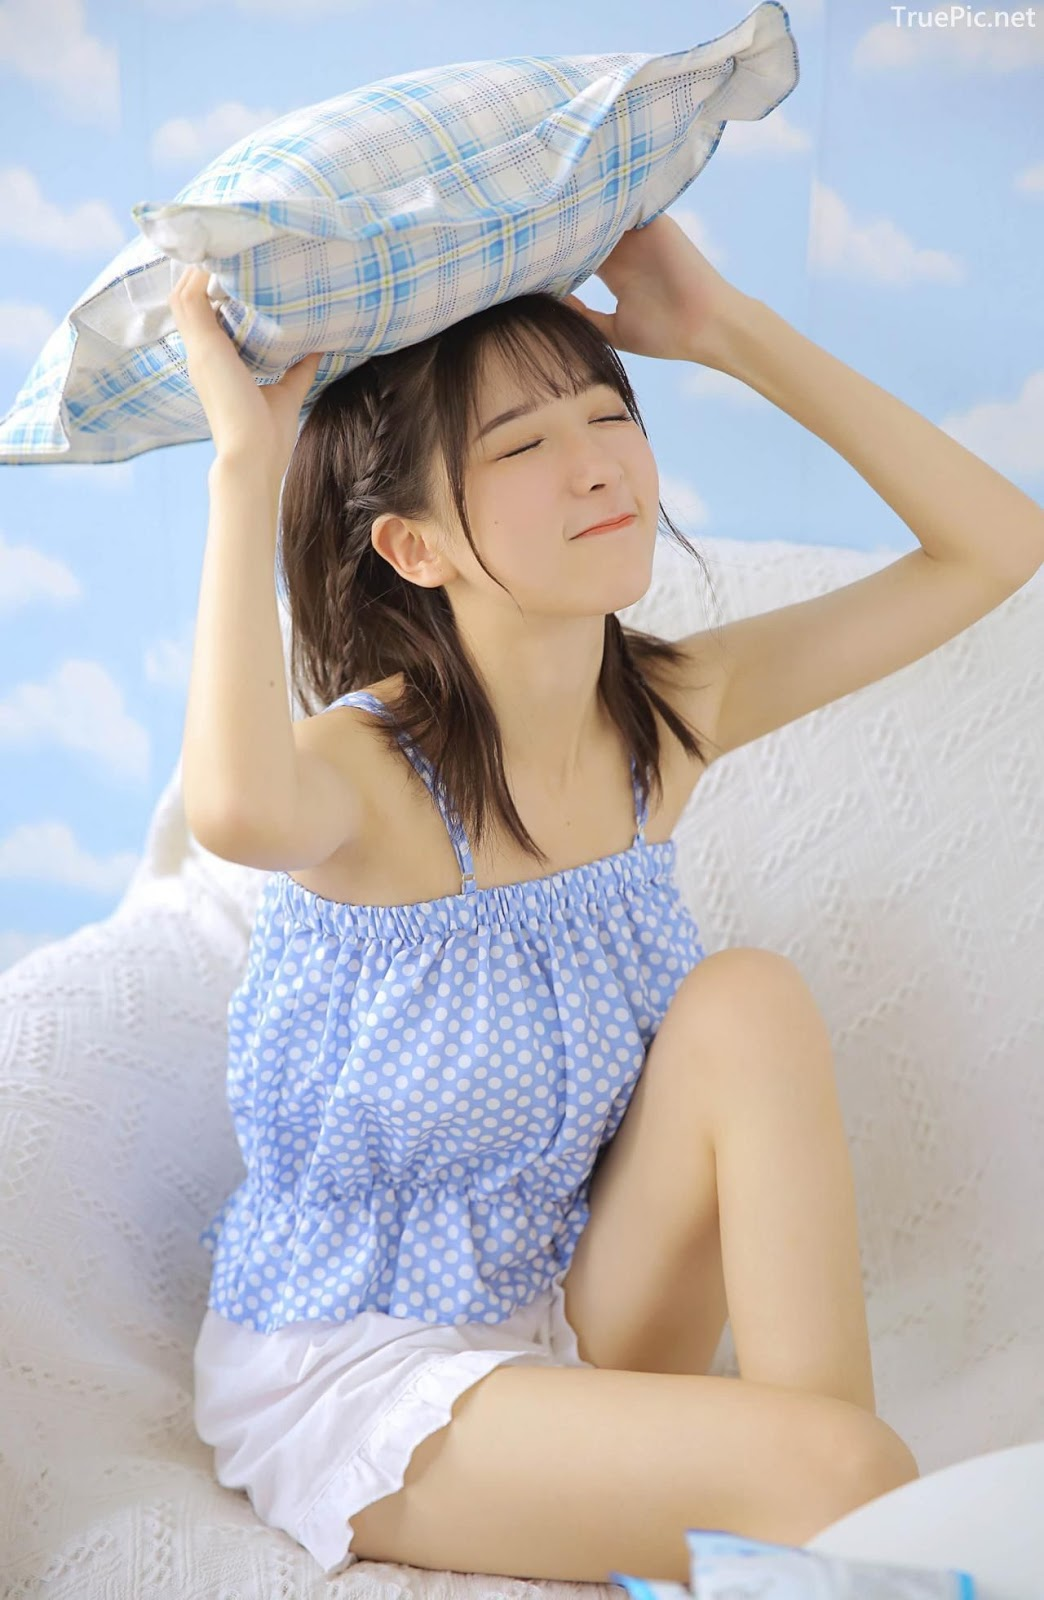 Chinese cute girl - She is a Beautiful sweet candy girl - TruePic.net - Picture 1